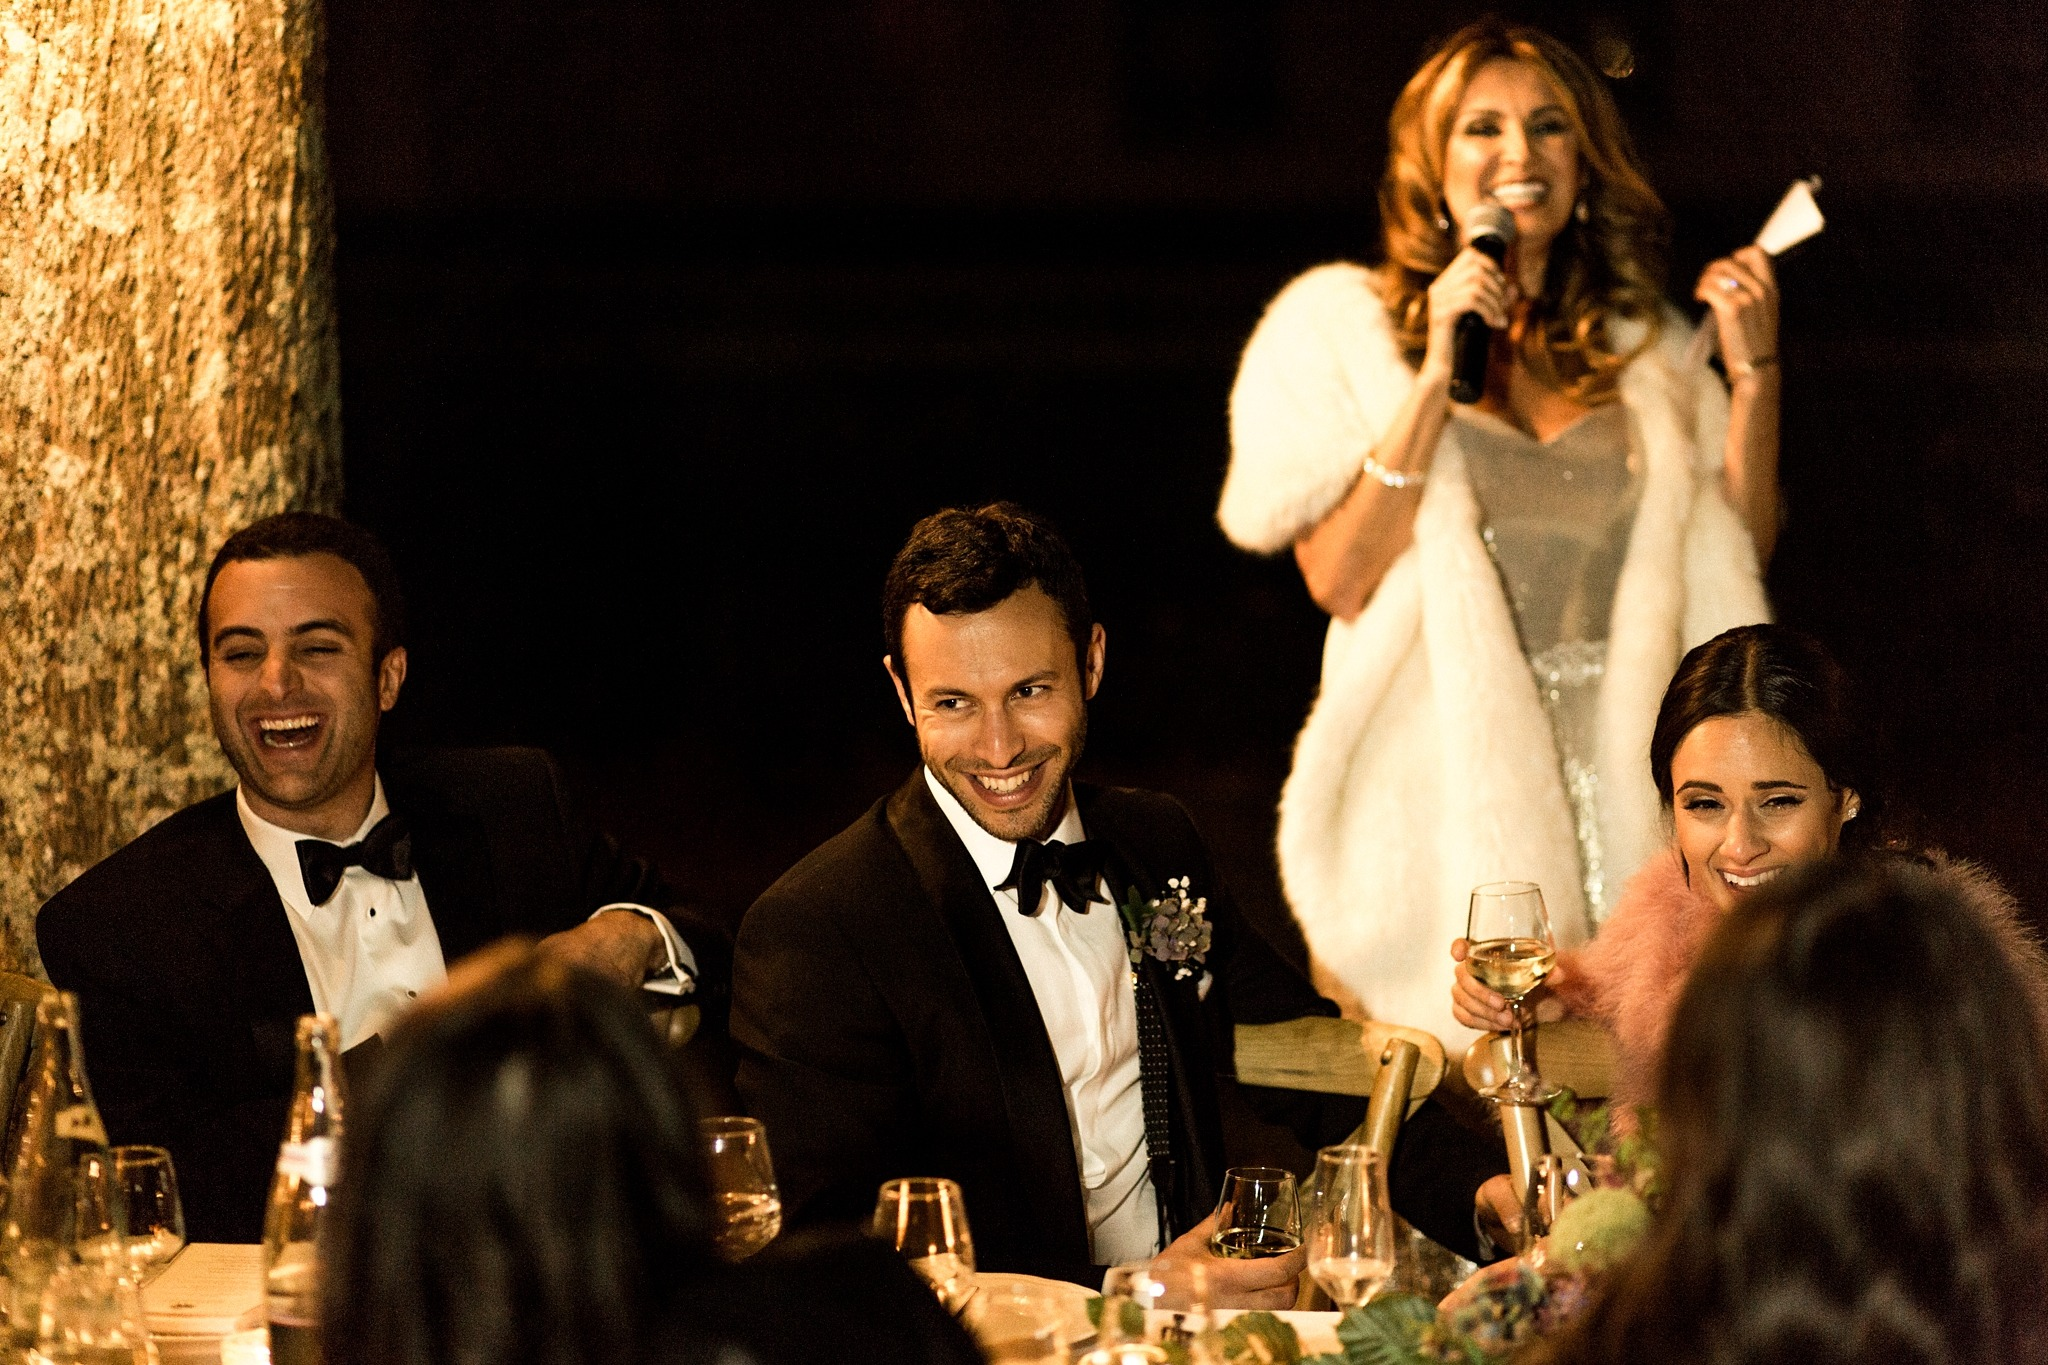 chateau-wedding-france-chanel-eric-as-seen-on-vogue-with-sarah-falugo-photographer_0125